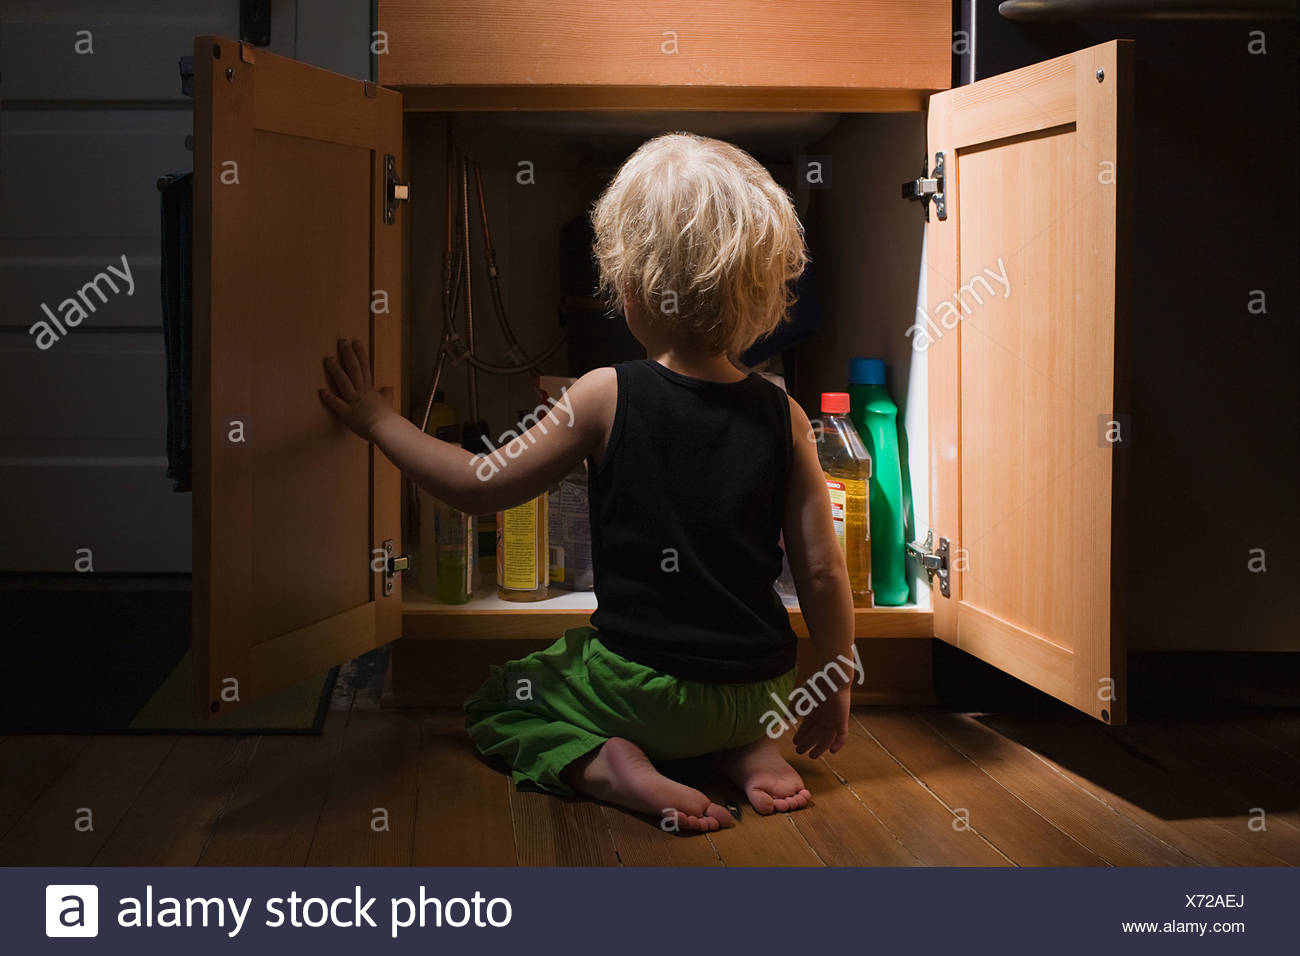 Little boy opening cupboard of cleaning products - Stock Image